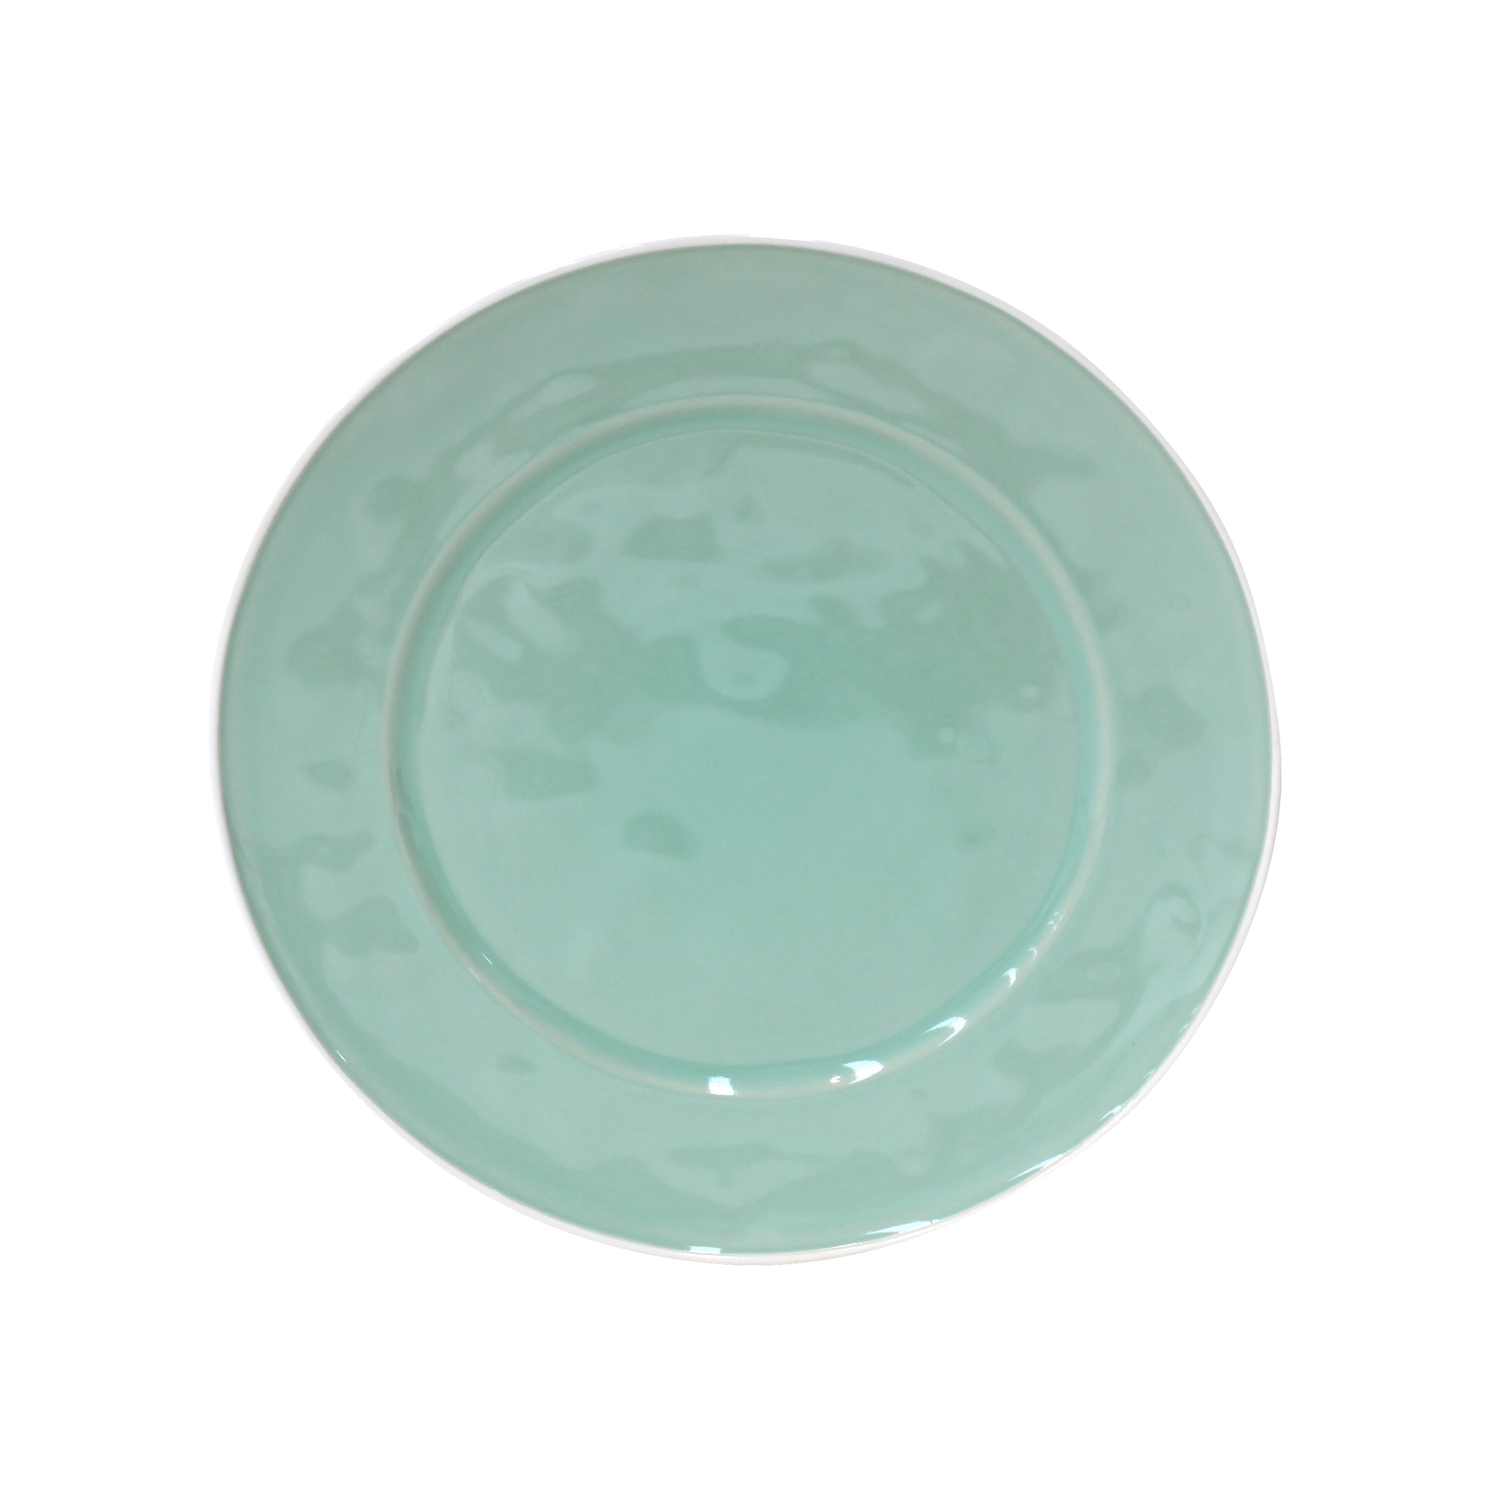 Astoria Mint Round Platter/ Charger 33cm Sparkle Gift